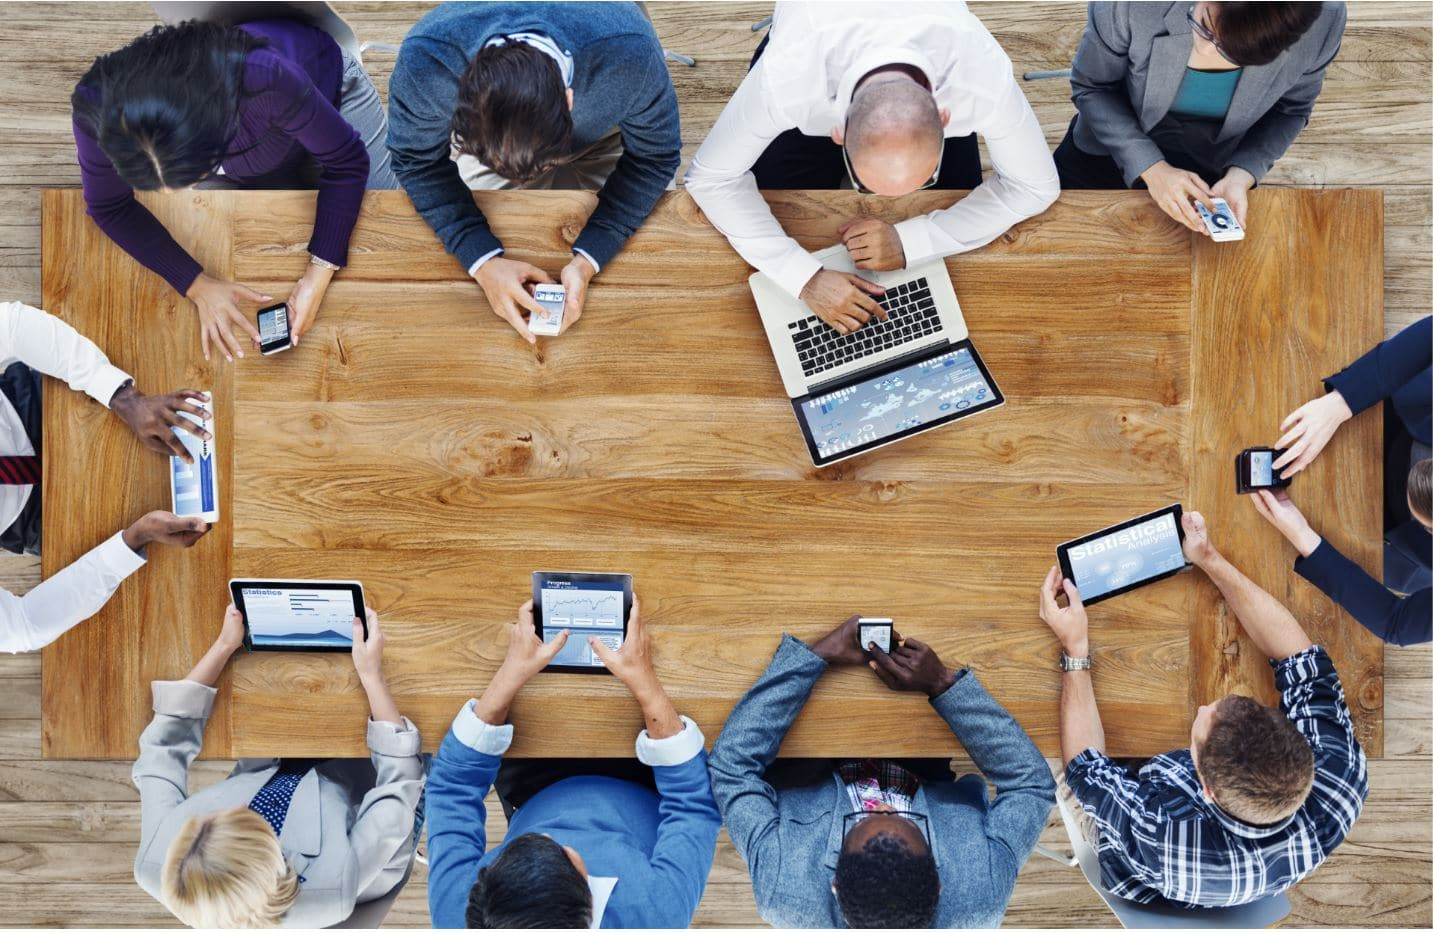 Five reasons connectivity makes for a positive office experience